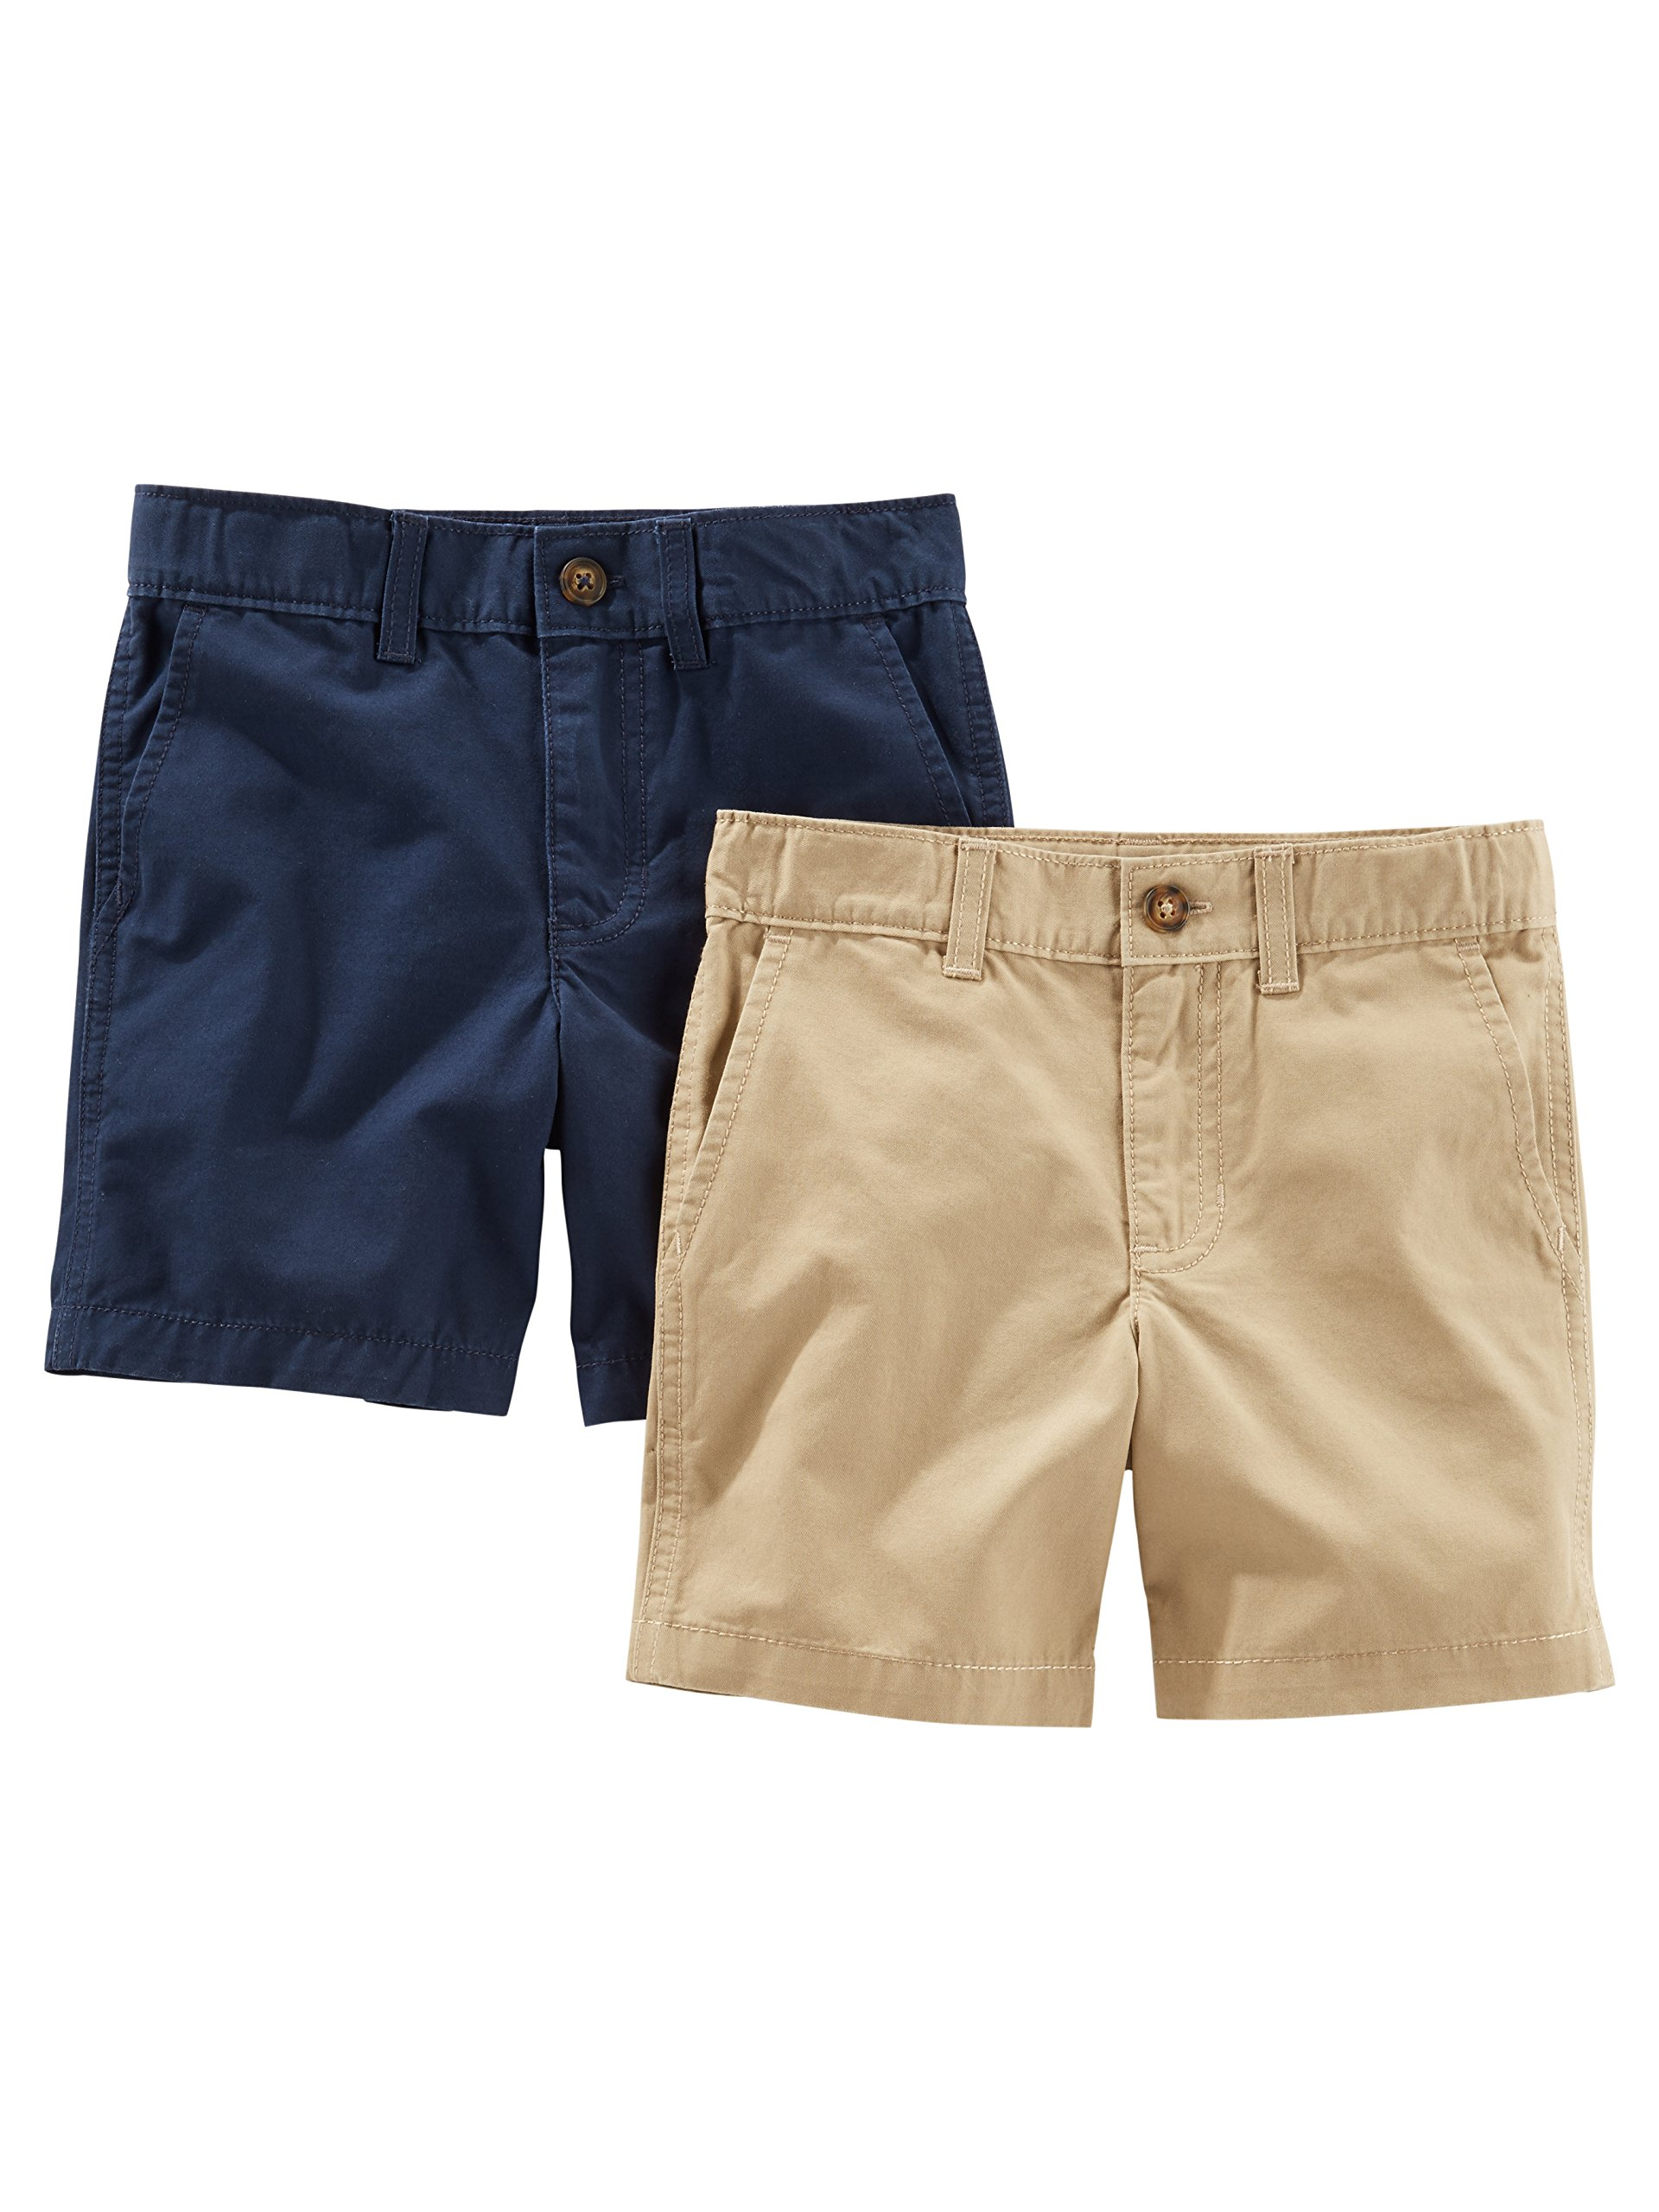 Simple Joys by Carter's Baby Boys' Toddler 2-Pack Flat Front Shorts, Khaki, Navy, 4T by Simple Joys by Carter's